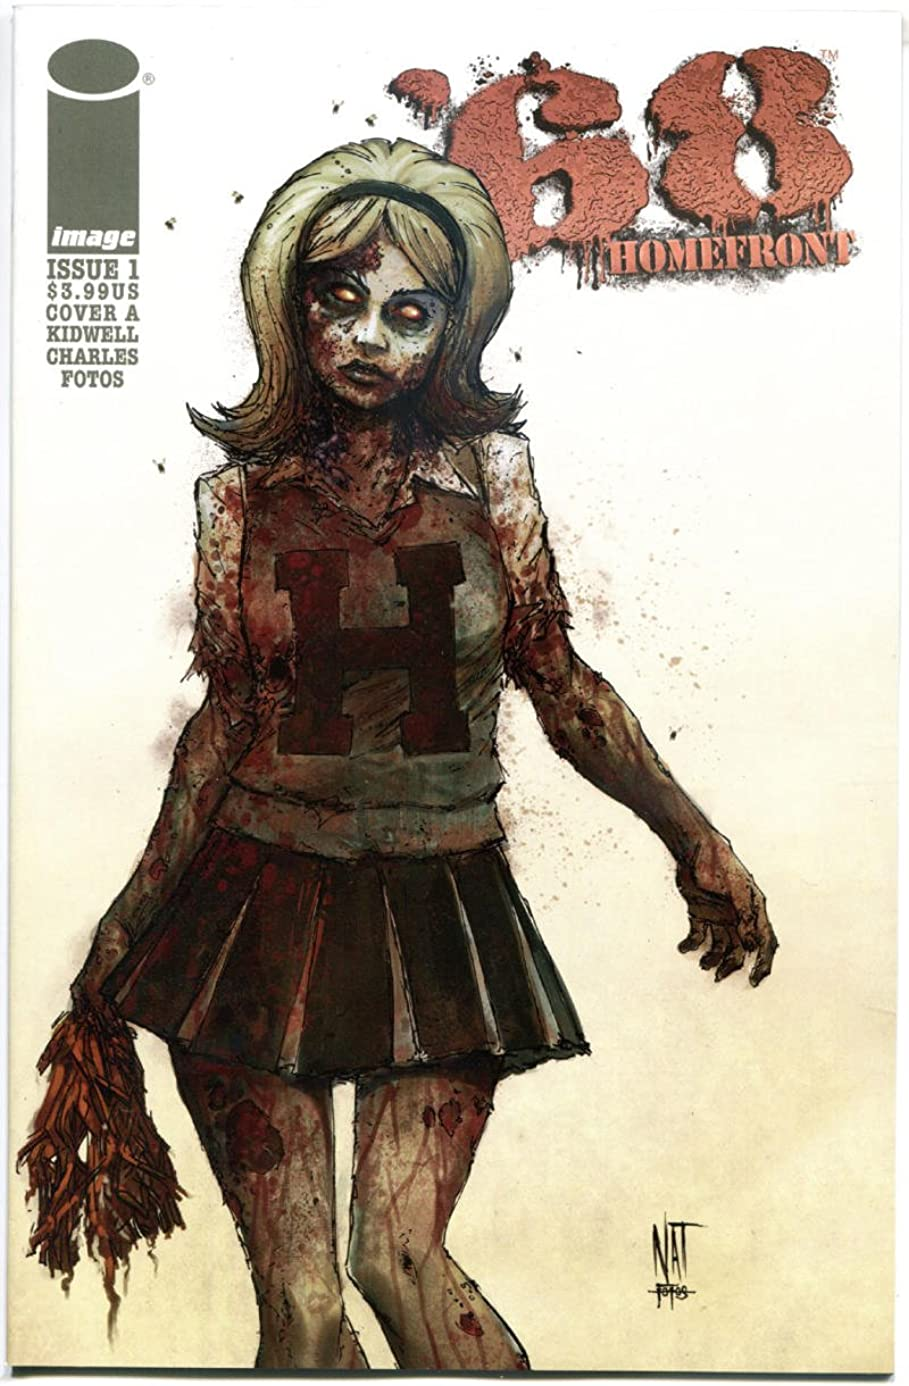 '68 HOMEFRONT #1 2 3 4 A, NM,1st, Zombie, Walking Dead, 2014, more in store, 1-4 set idz7084345